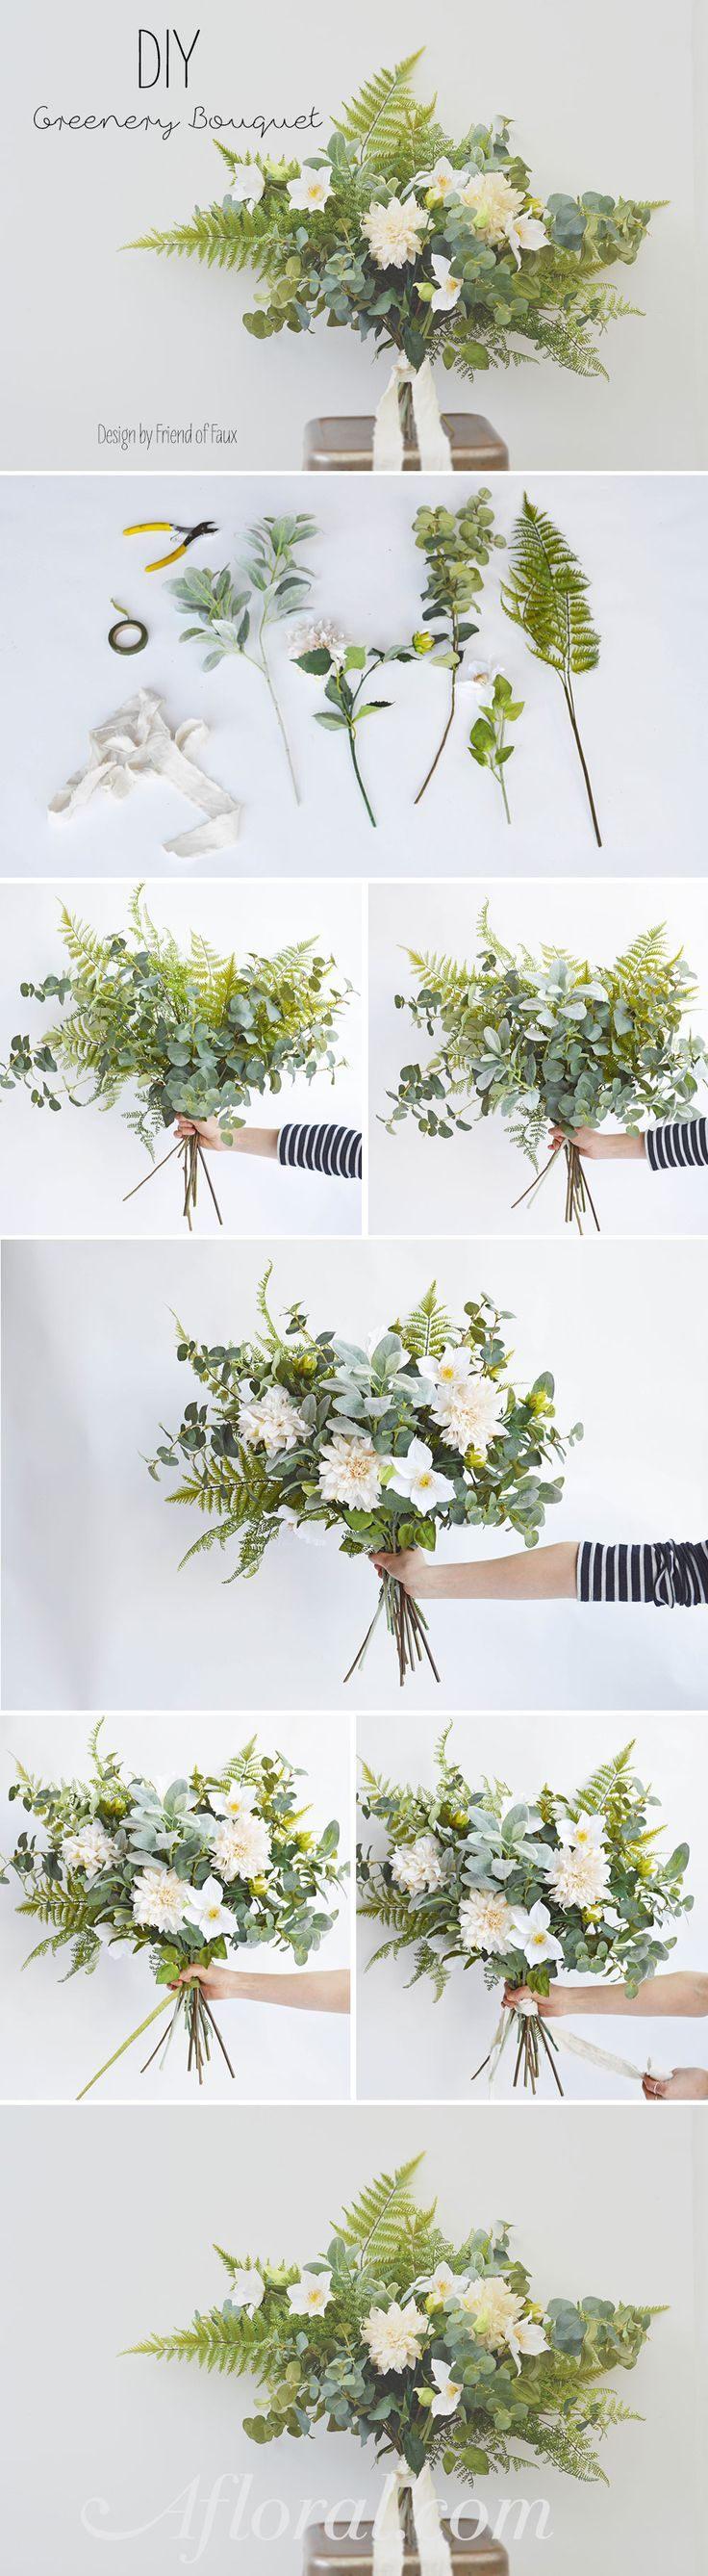 How to make your own bouquet | Styling ideas | Make your own wedding bouquets